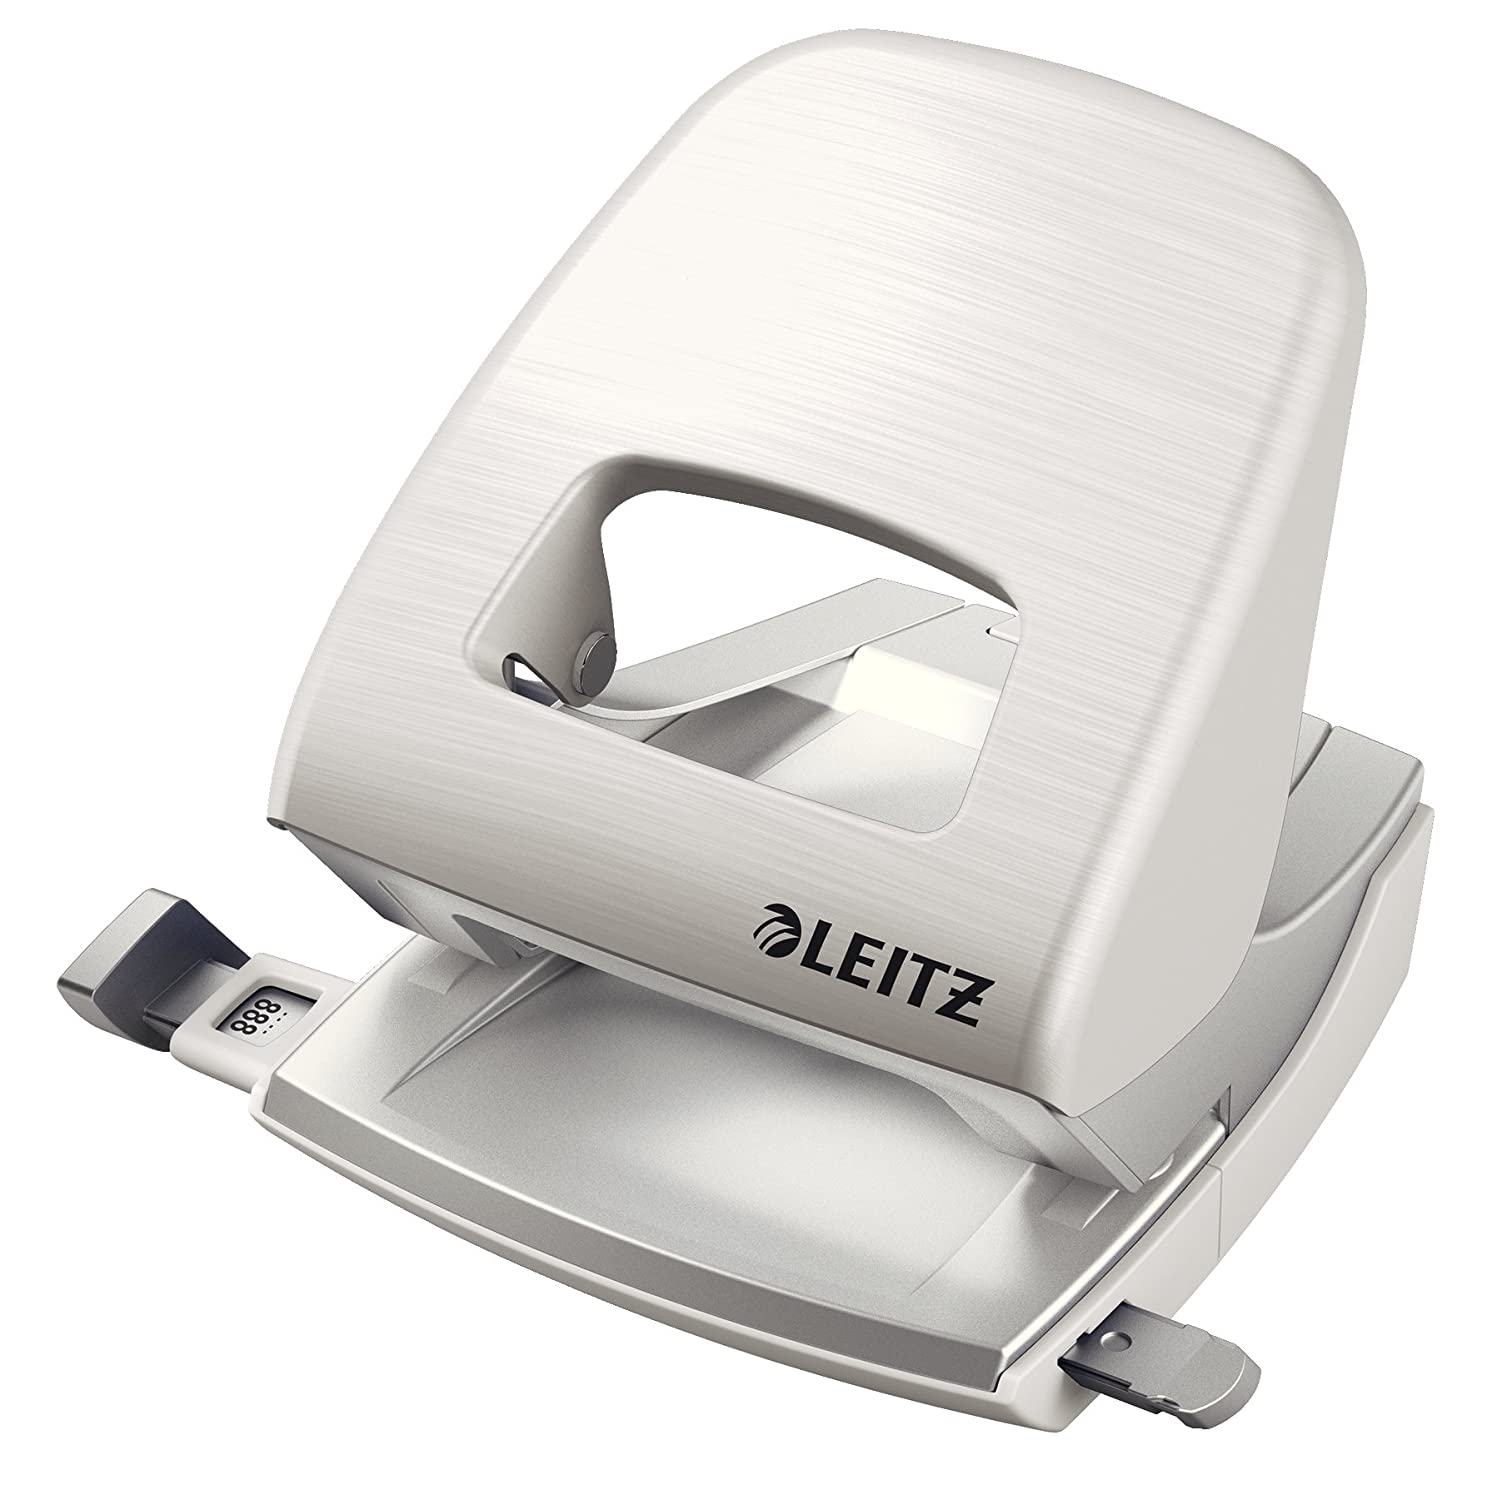 Leitz Hole Punch, 30 Sheets, Guide Bar with Format Markings, Metal, Style Range, 50060028 - Garnet Red Esselte